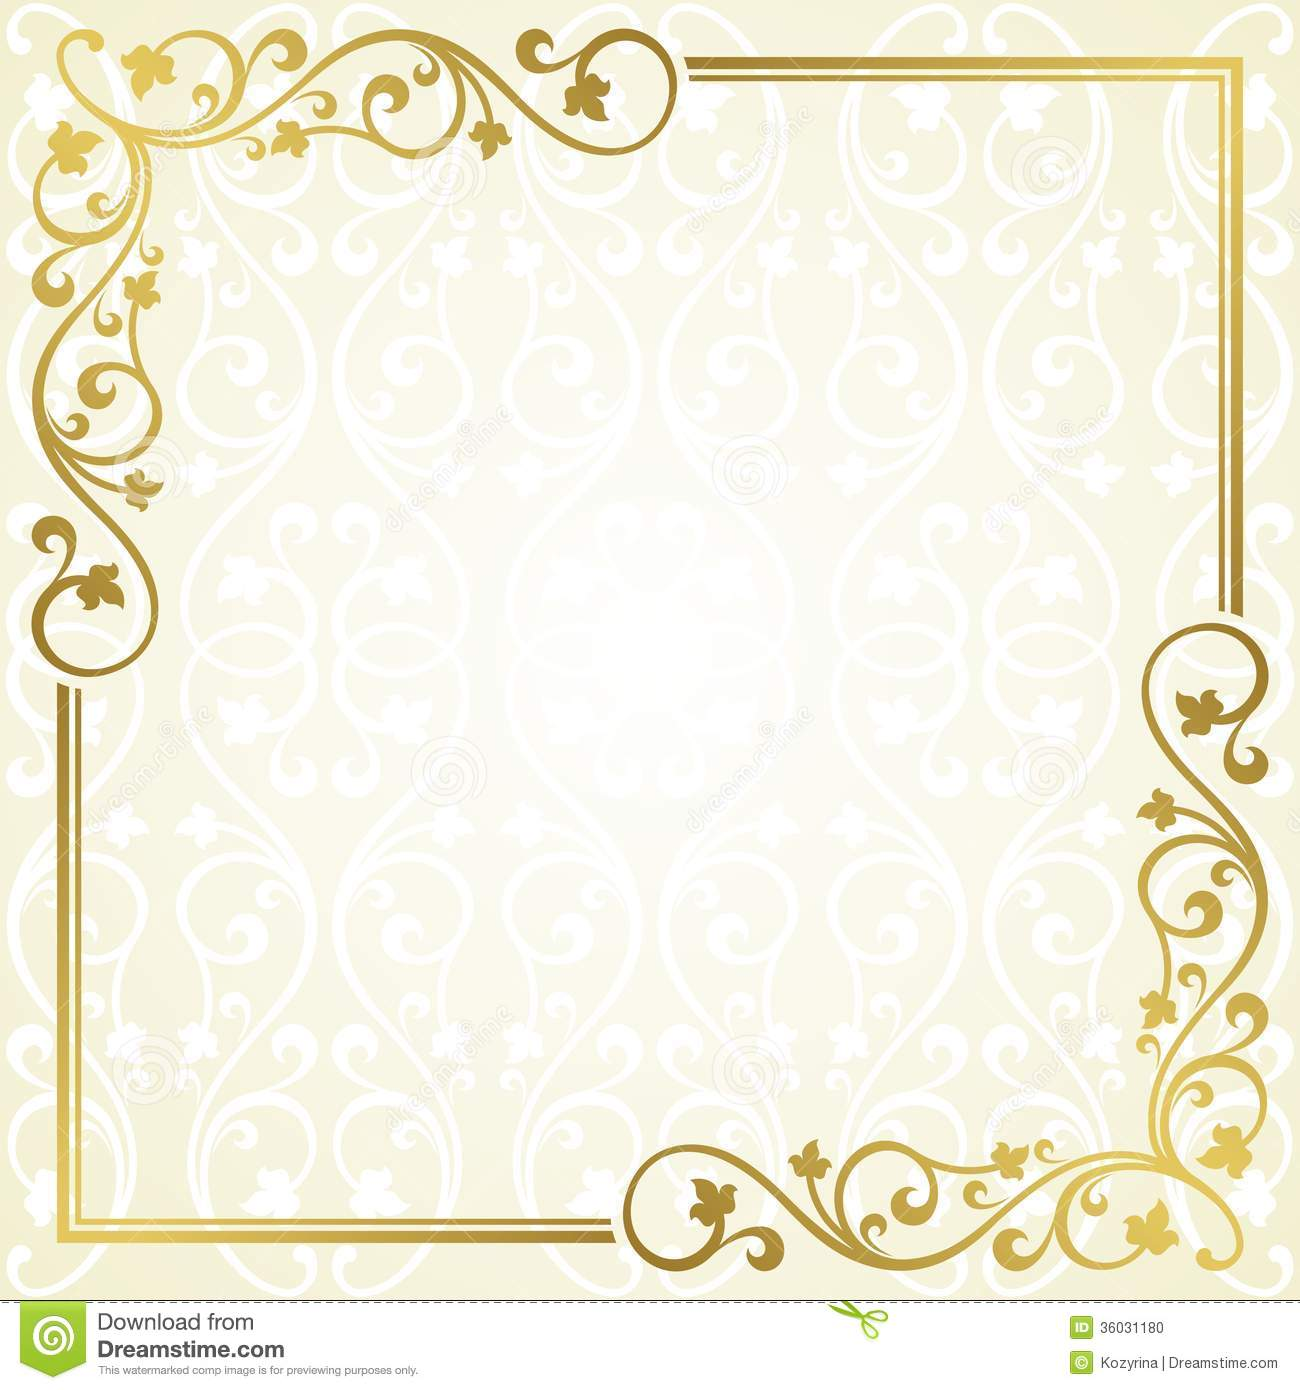 invitation card templateFloral invitation card This is file of EPS10 format mJoJrkyr